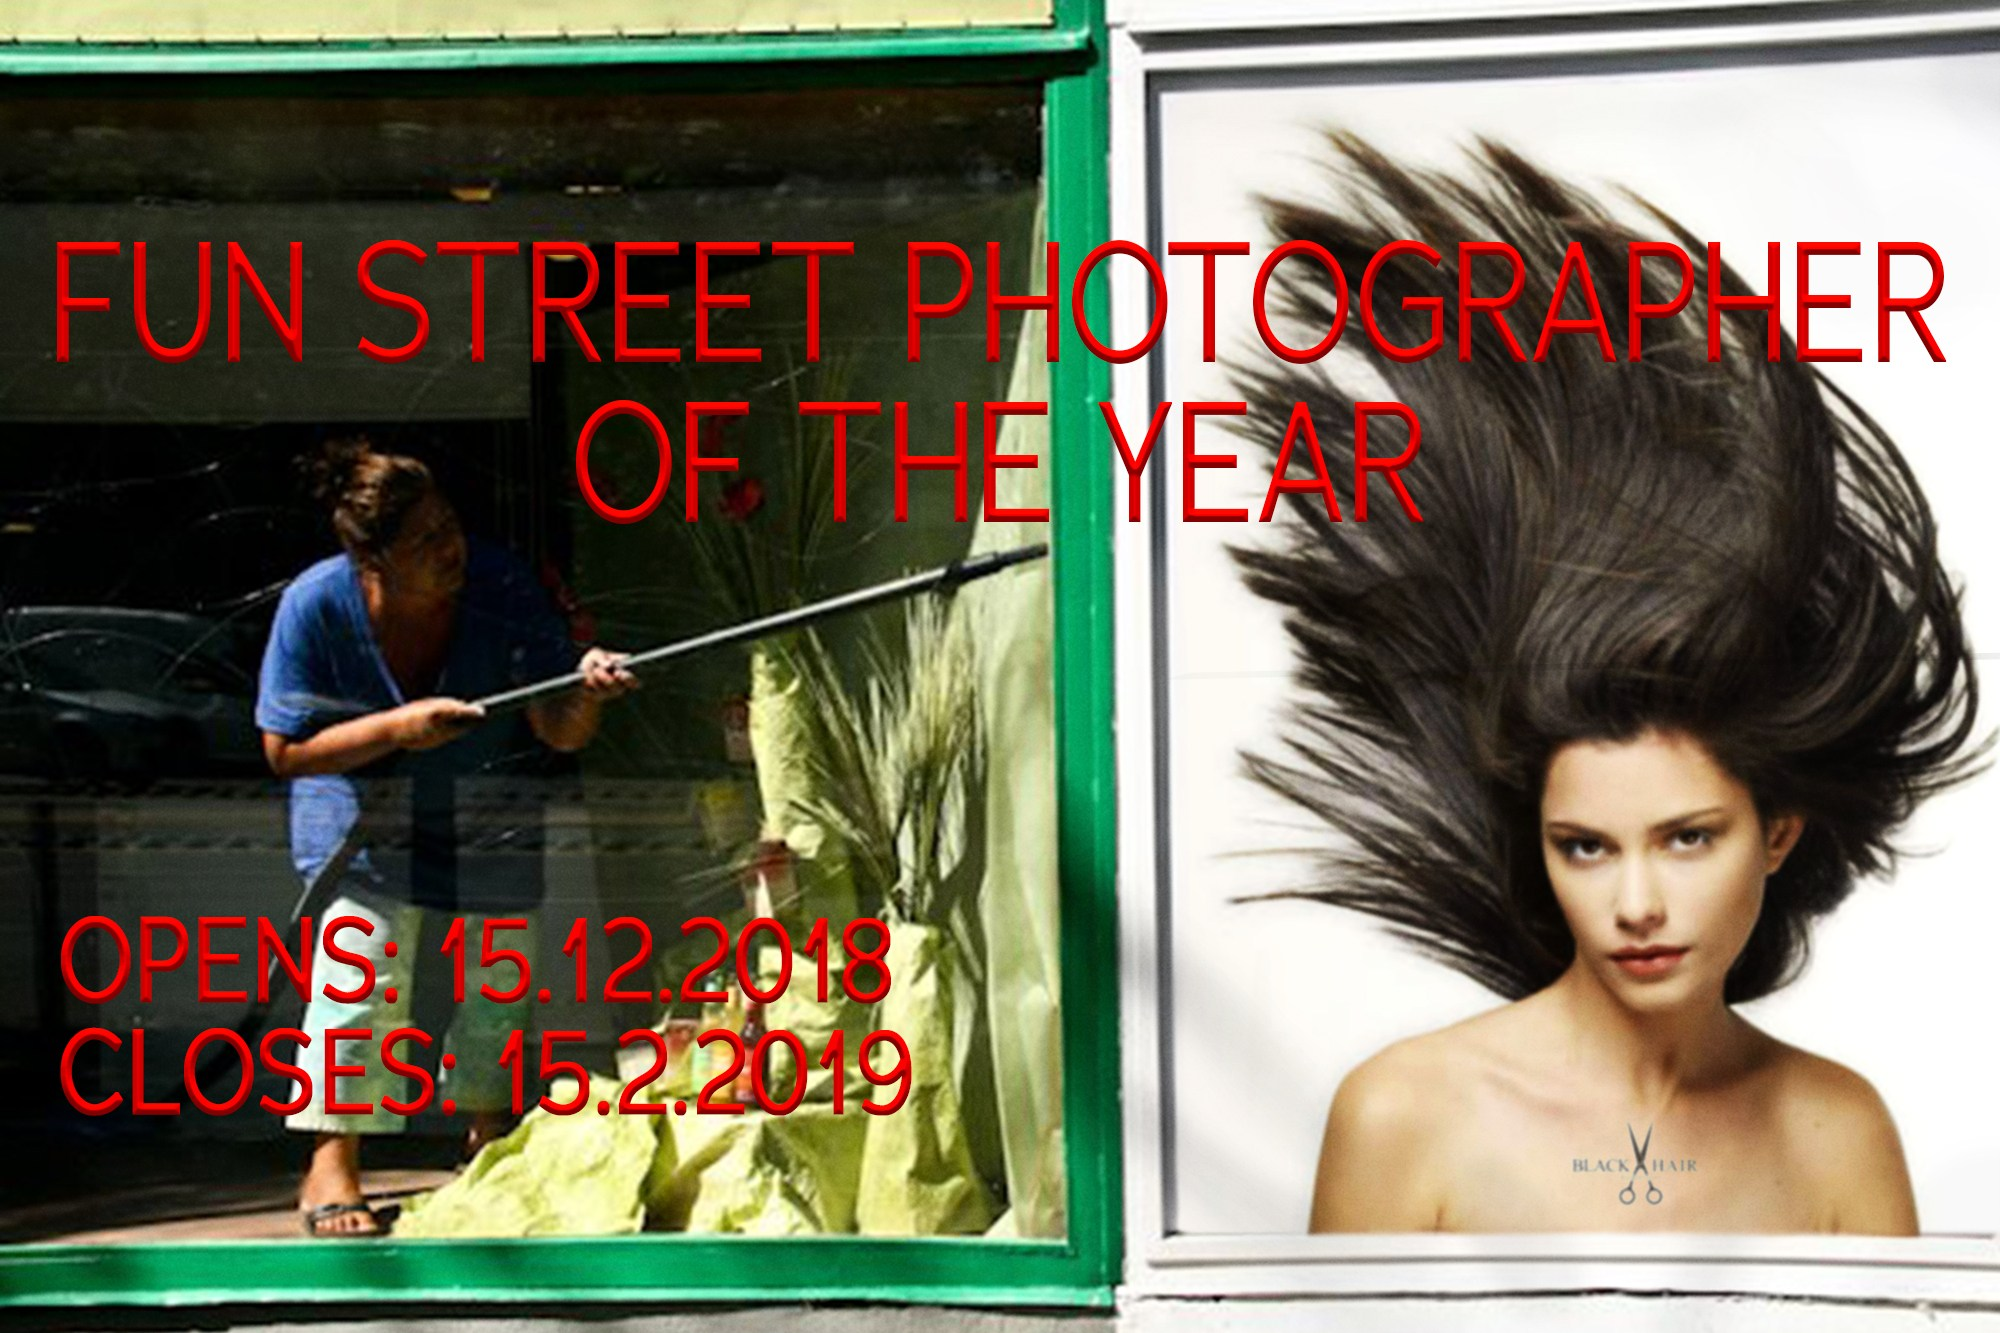 Fun Street Photographer of the Year - logo